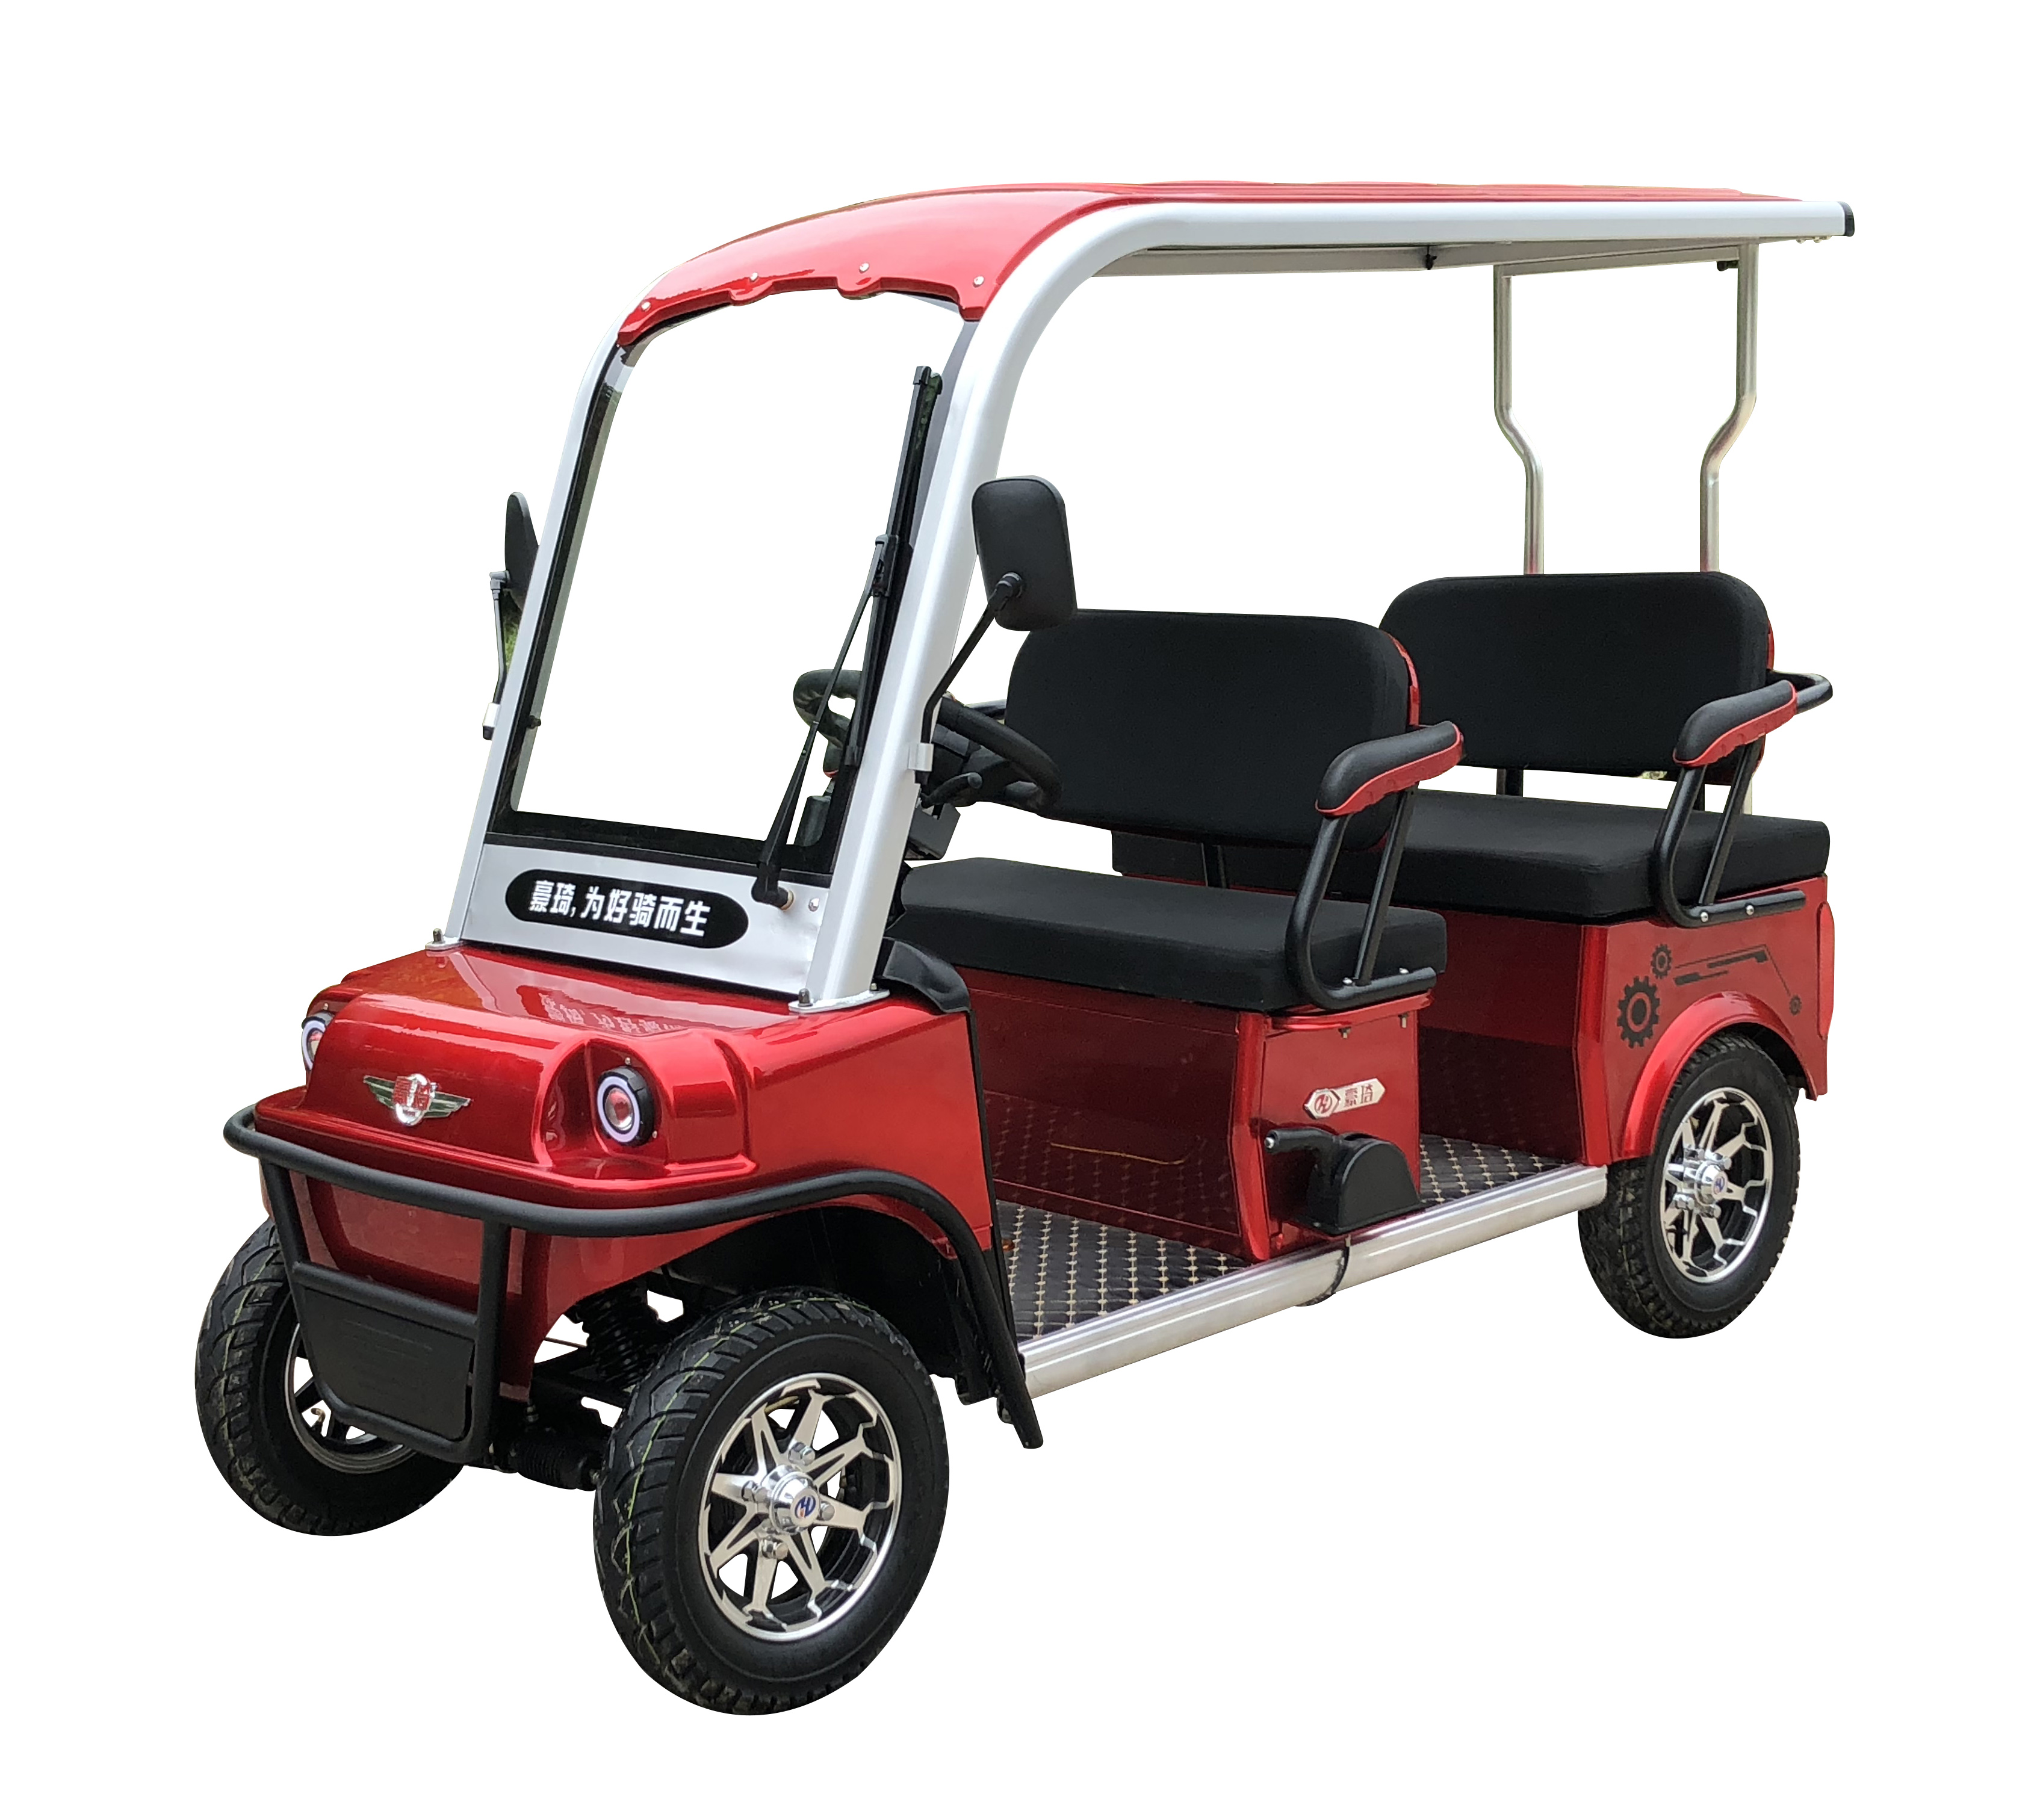 2020 New Design 4 Seater Adult Electric Golf Carts Motorized  Tandem Rickshaw Surrey Sightseeing Bicycle for Sale 1